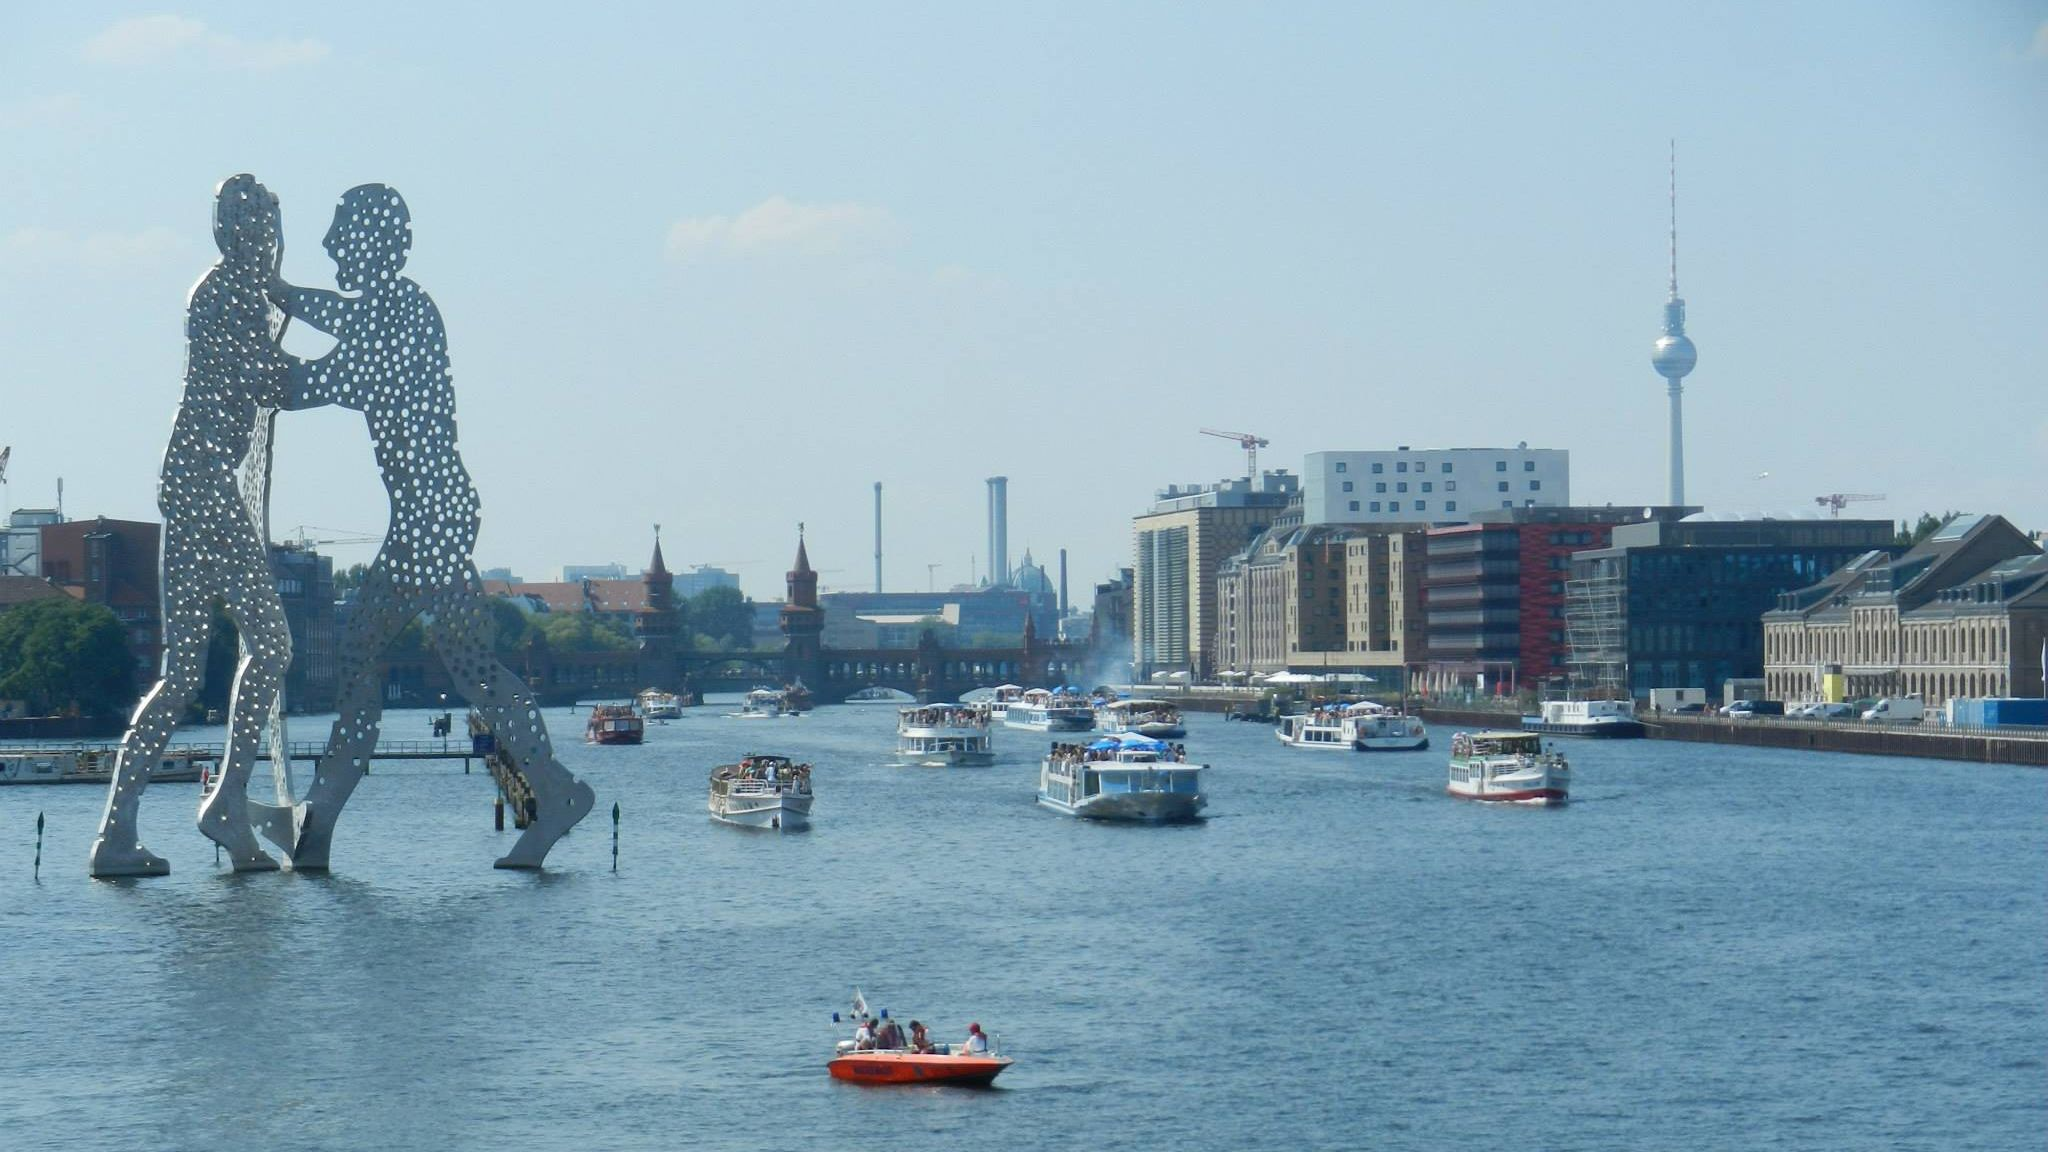 Massive sculpture of two people dancing on the Spree river in Berlin